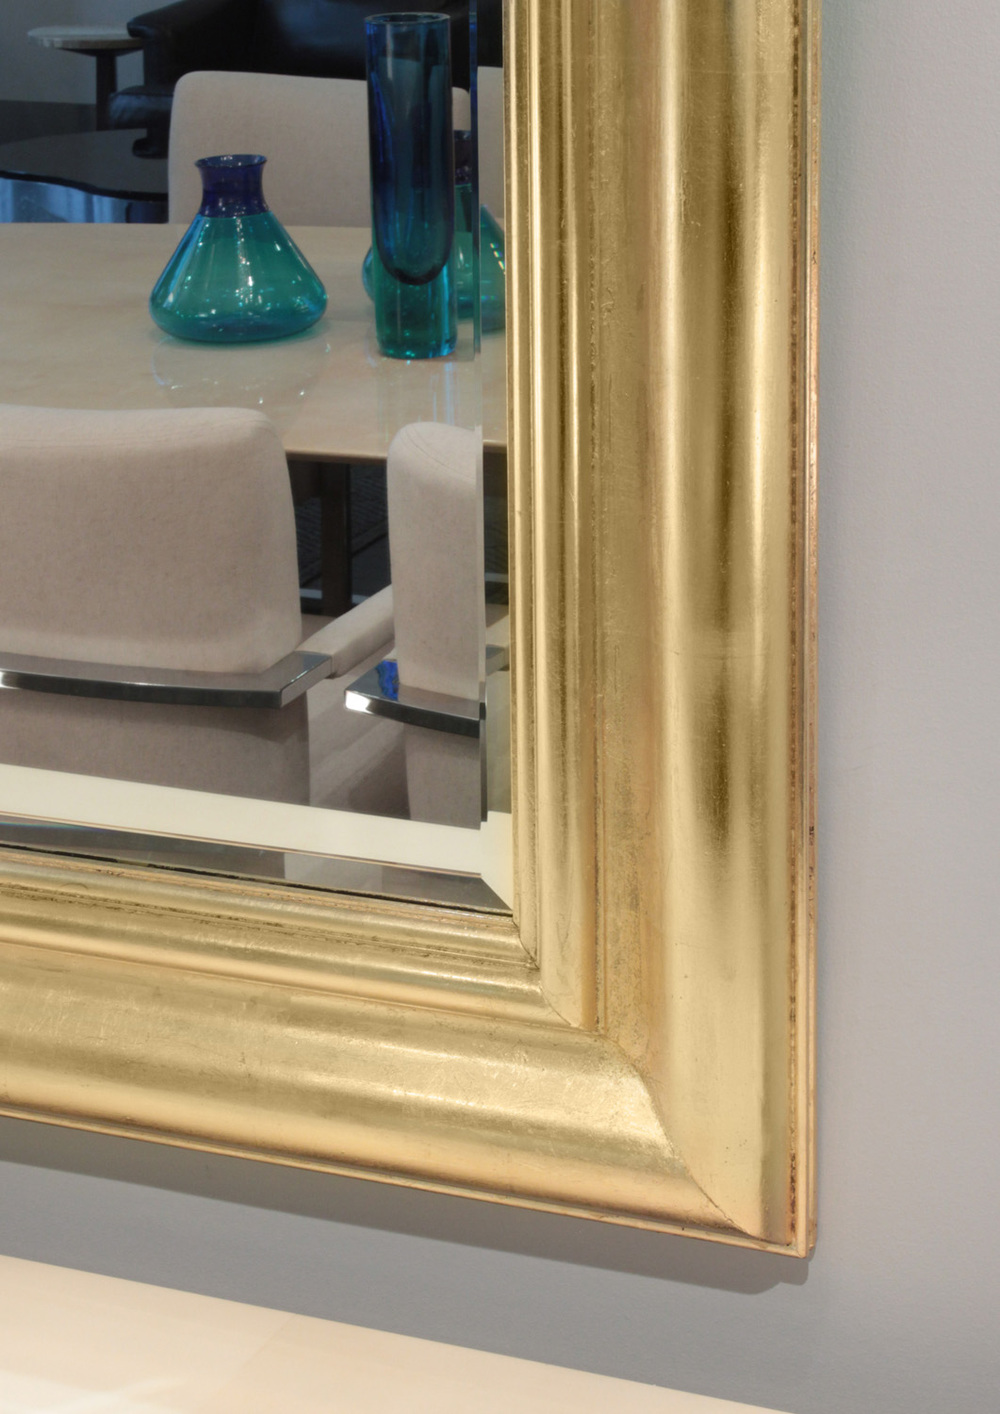 Springer 75 rect gold leaf mirror73 corner detail hires.jpg